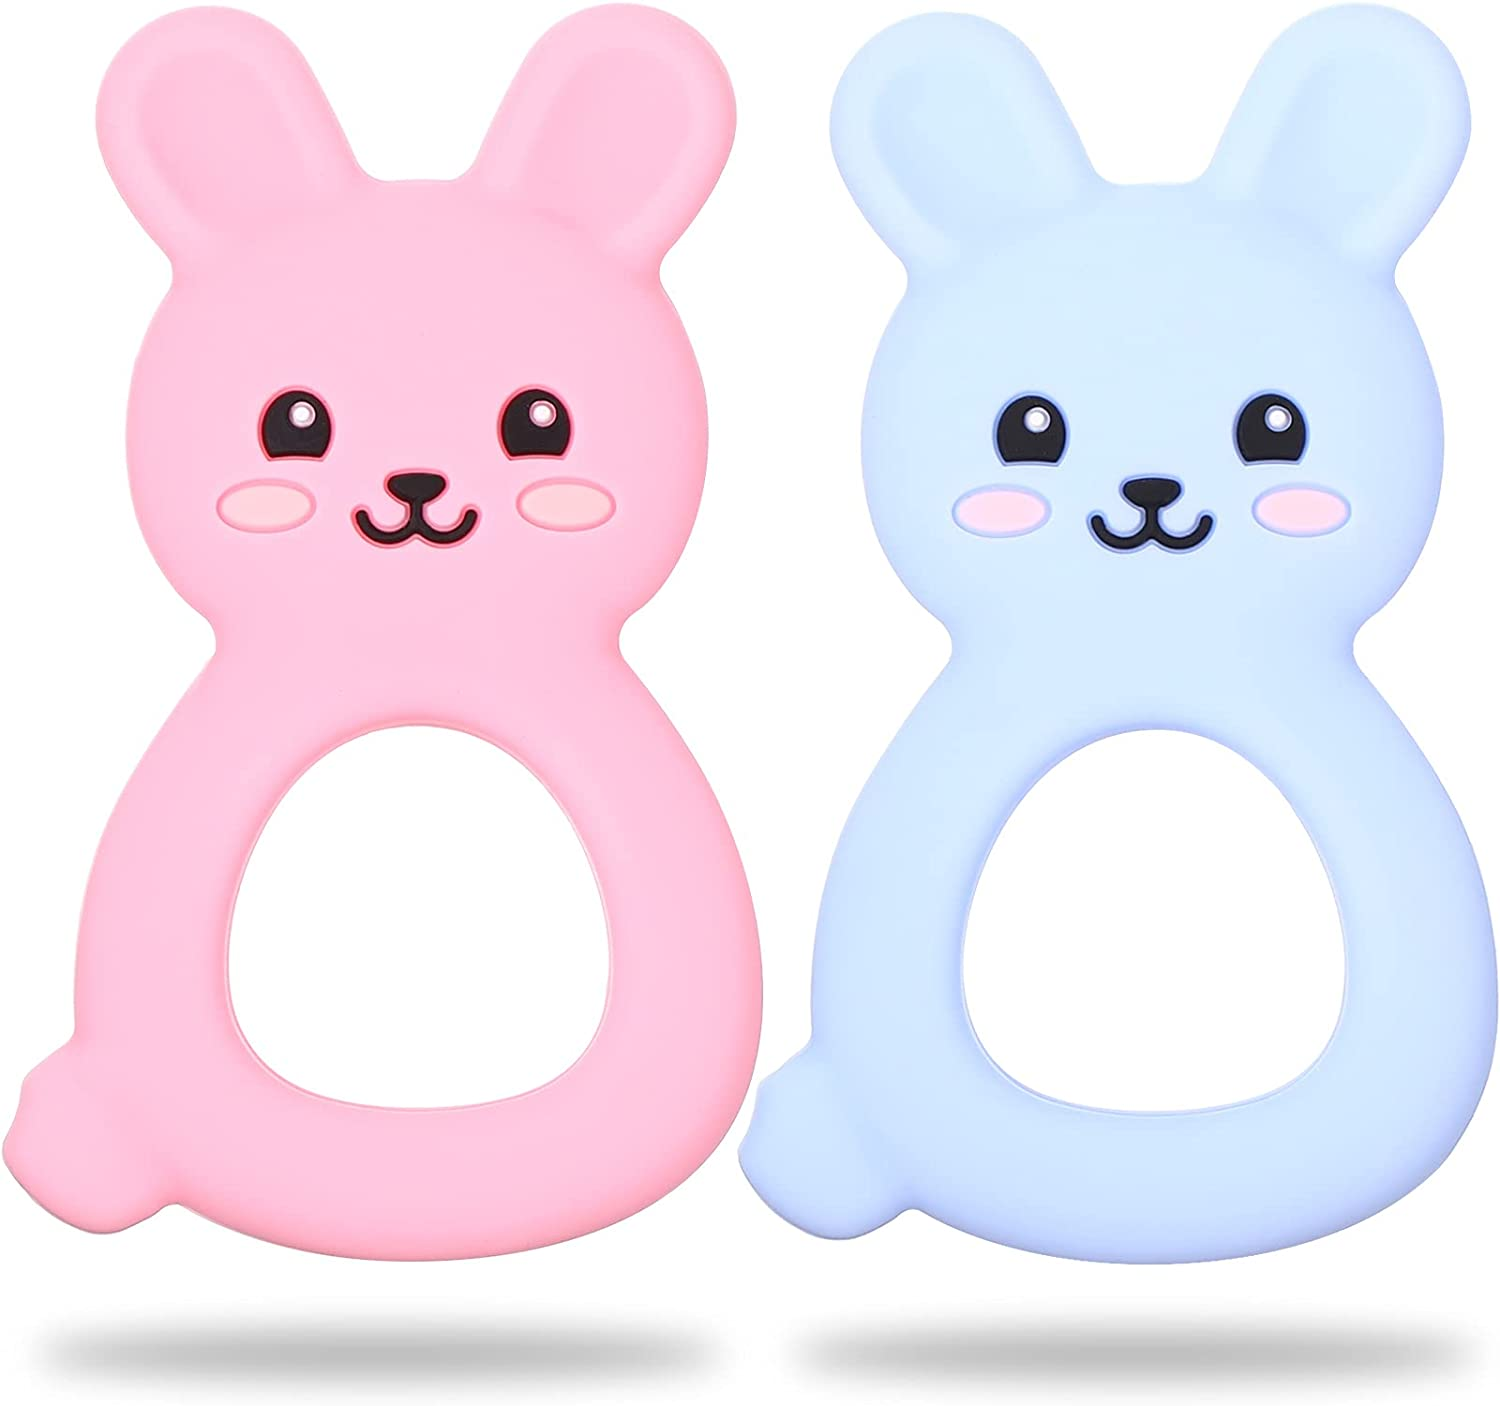 Outstanding mart Nuanchu 2 Pieces Baby Teething Bunny Toys Silicone